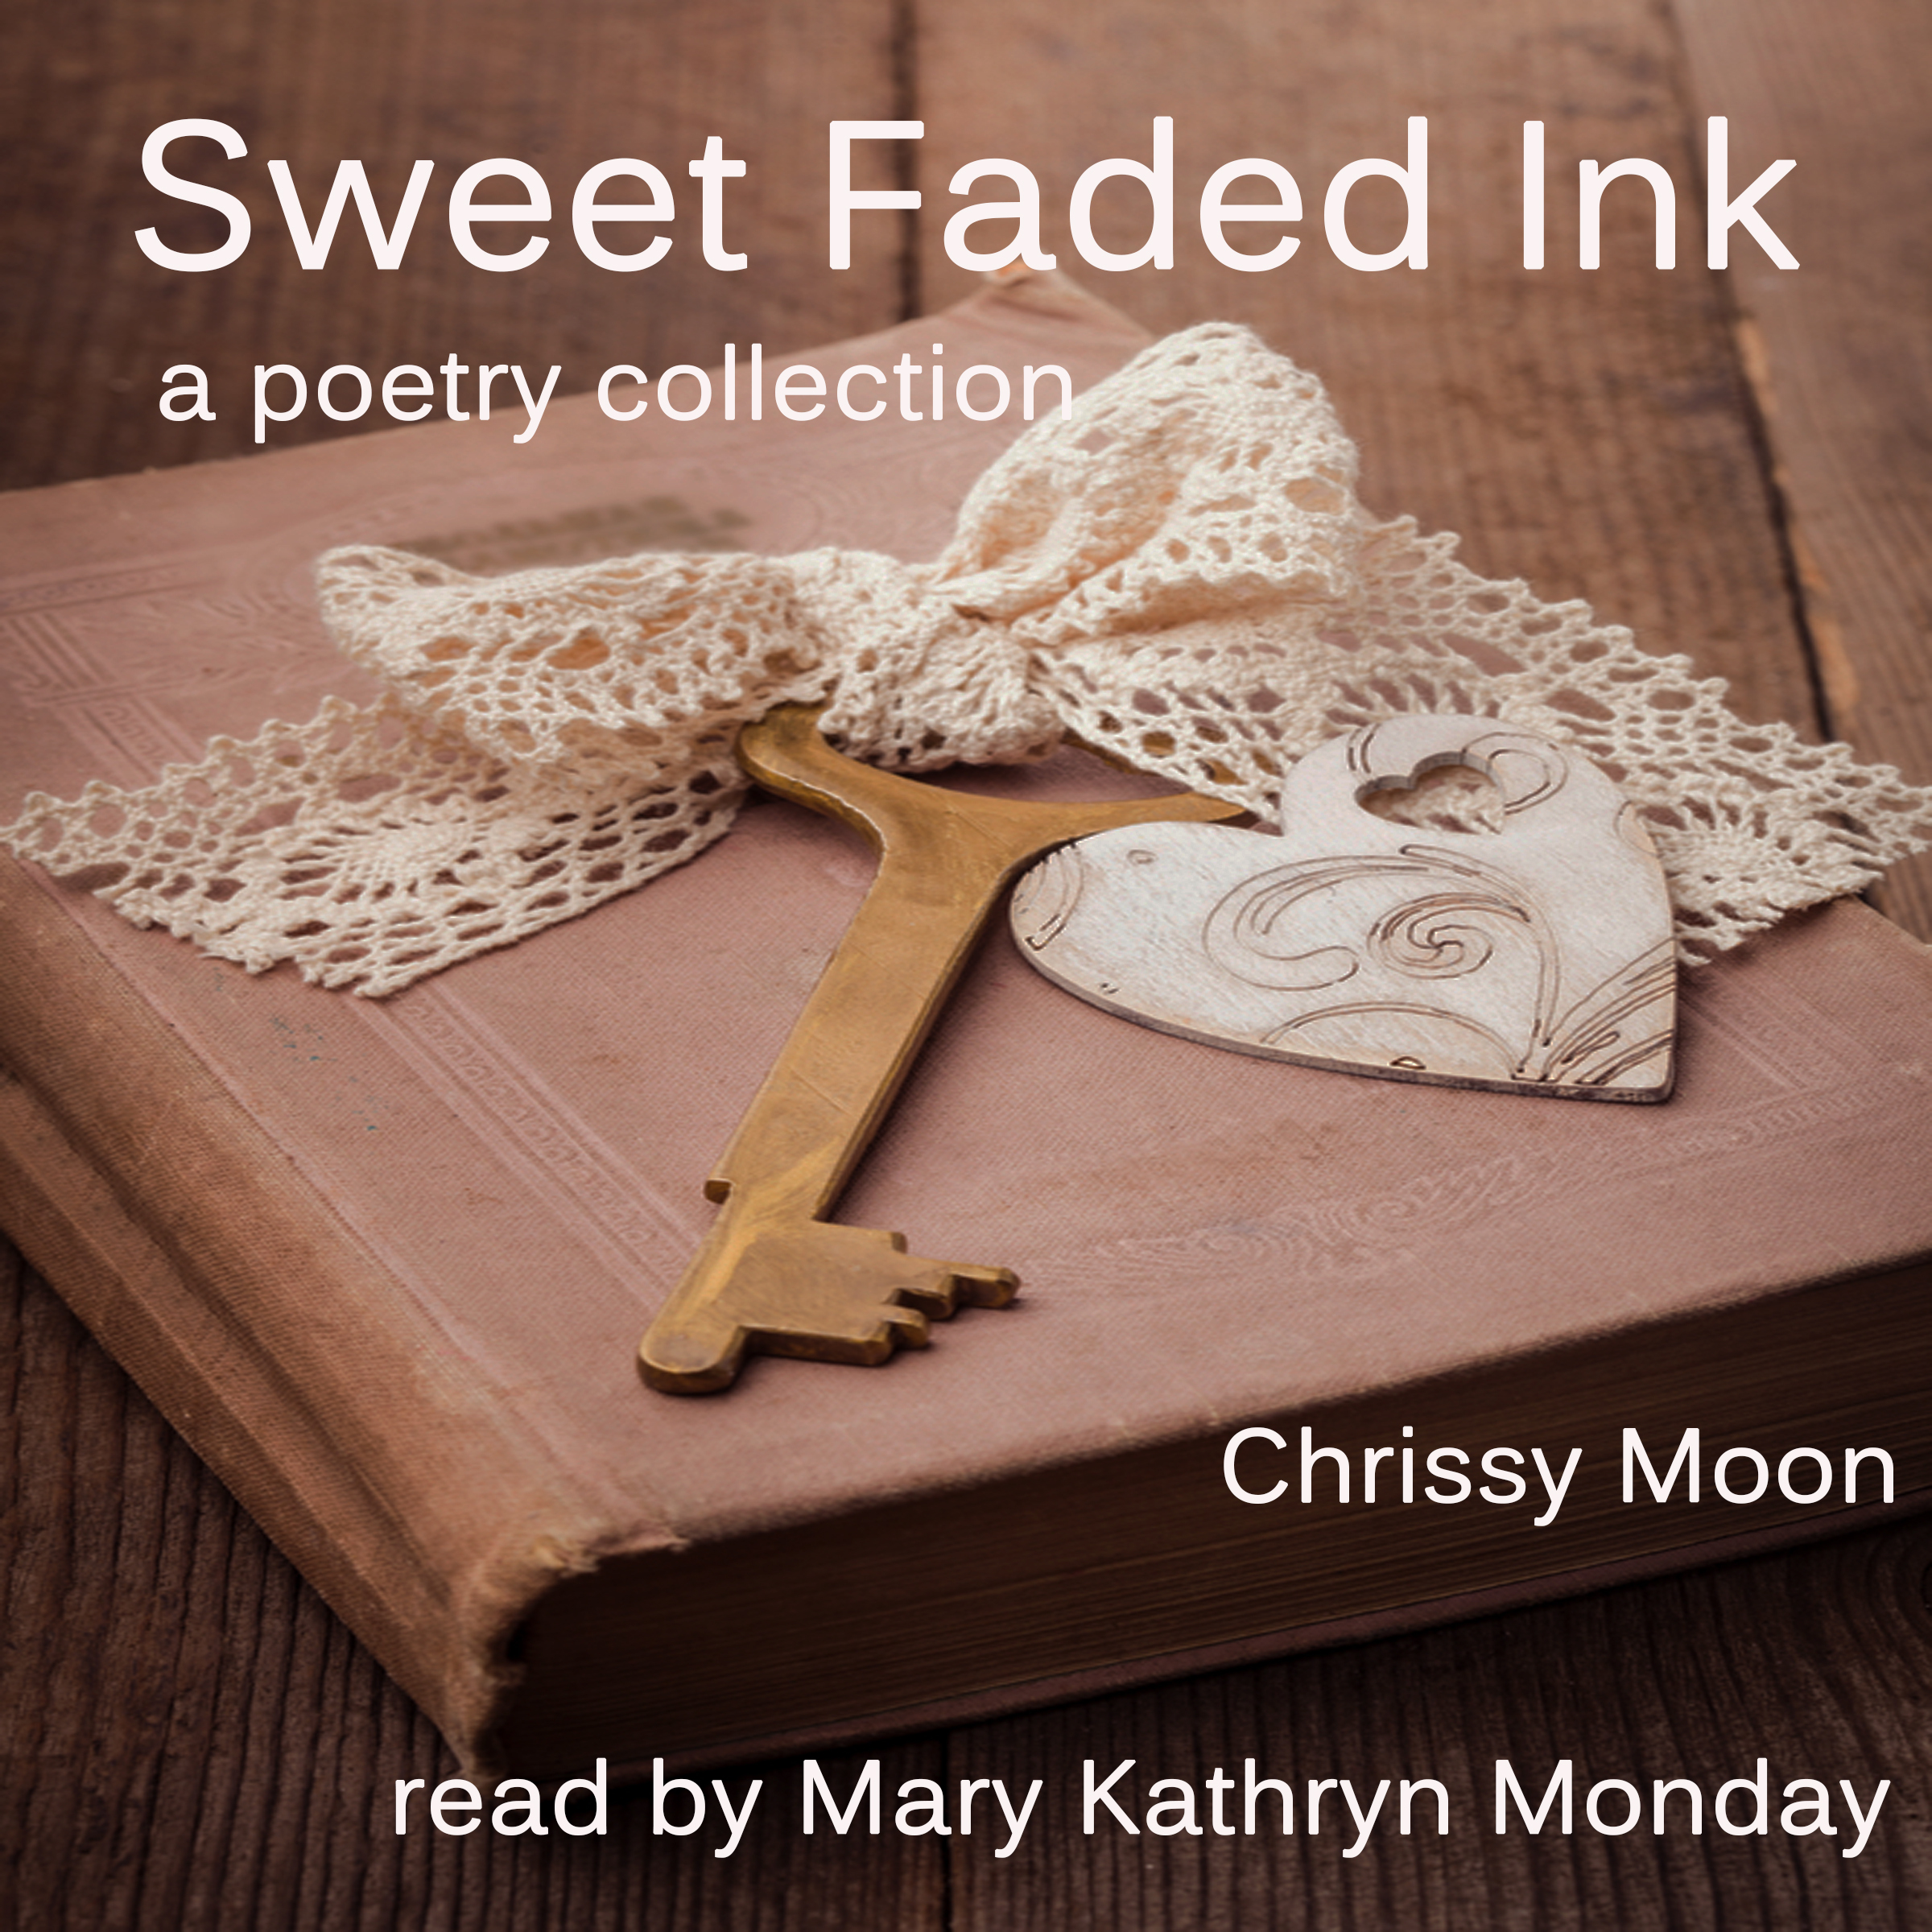 Sweet Faded Ink: A Poetry Collection  by  Chrissy Moon